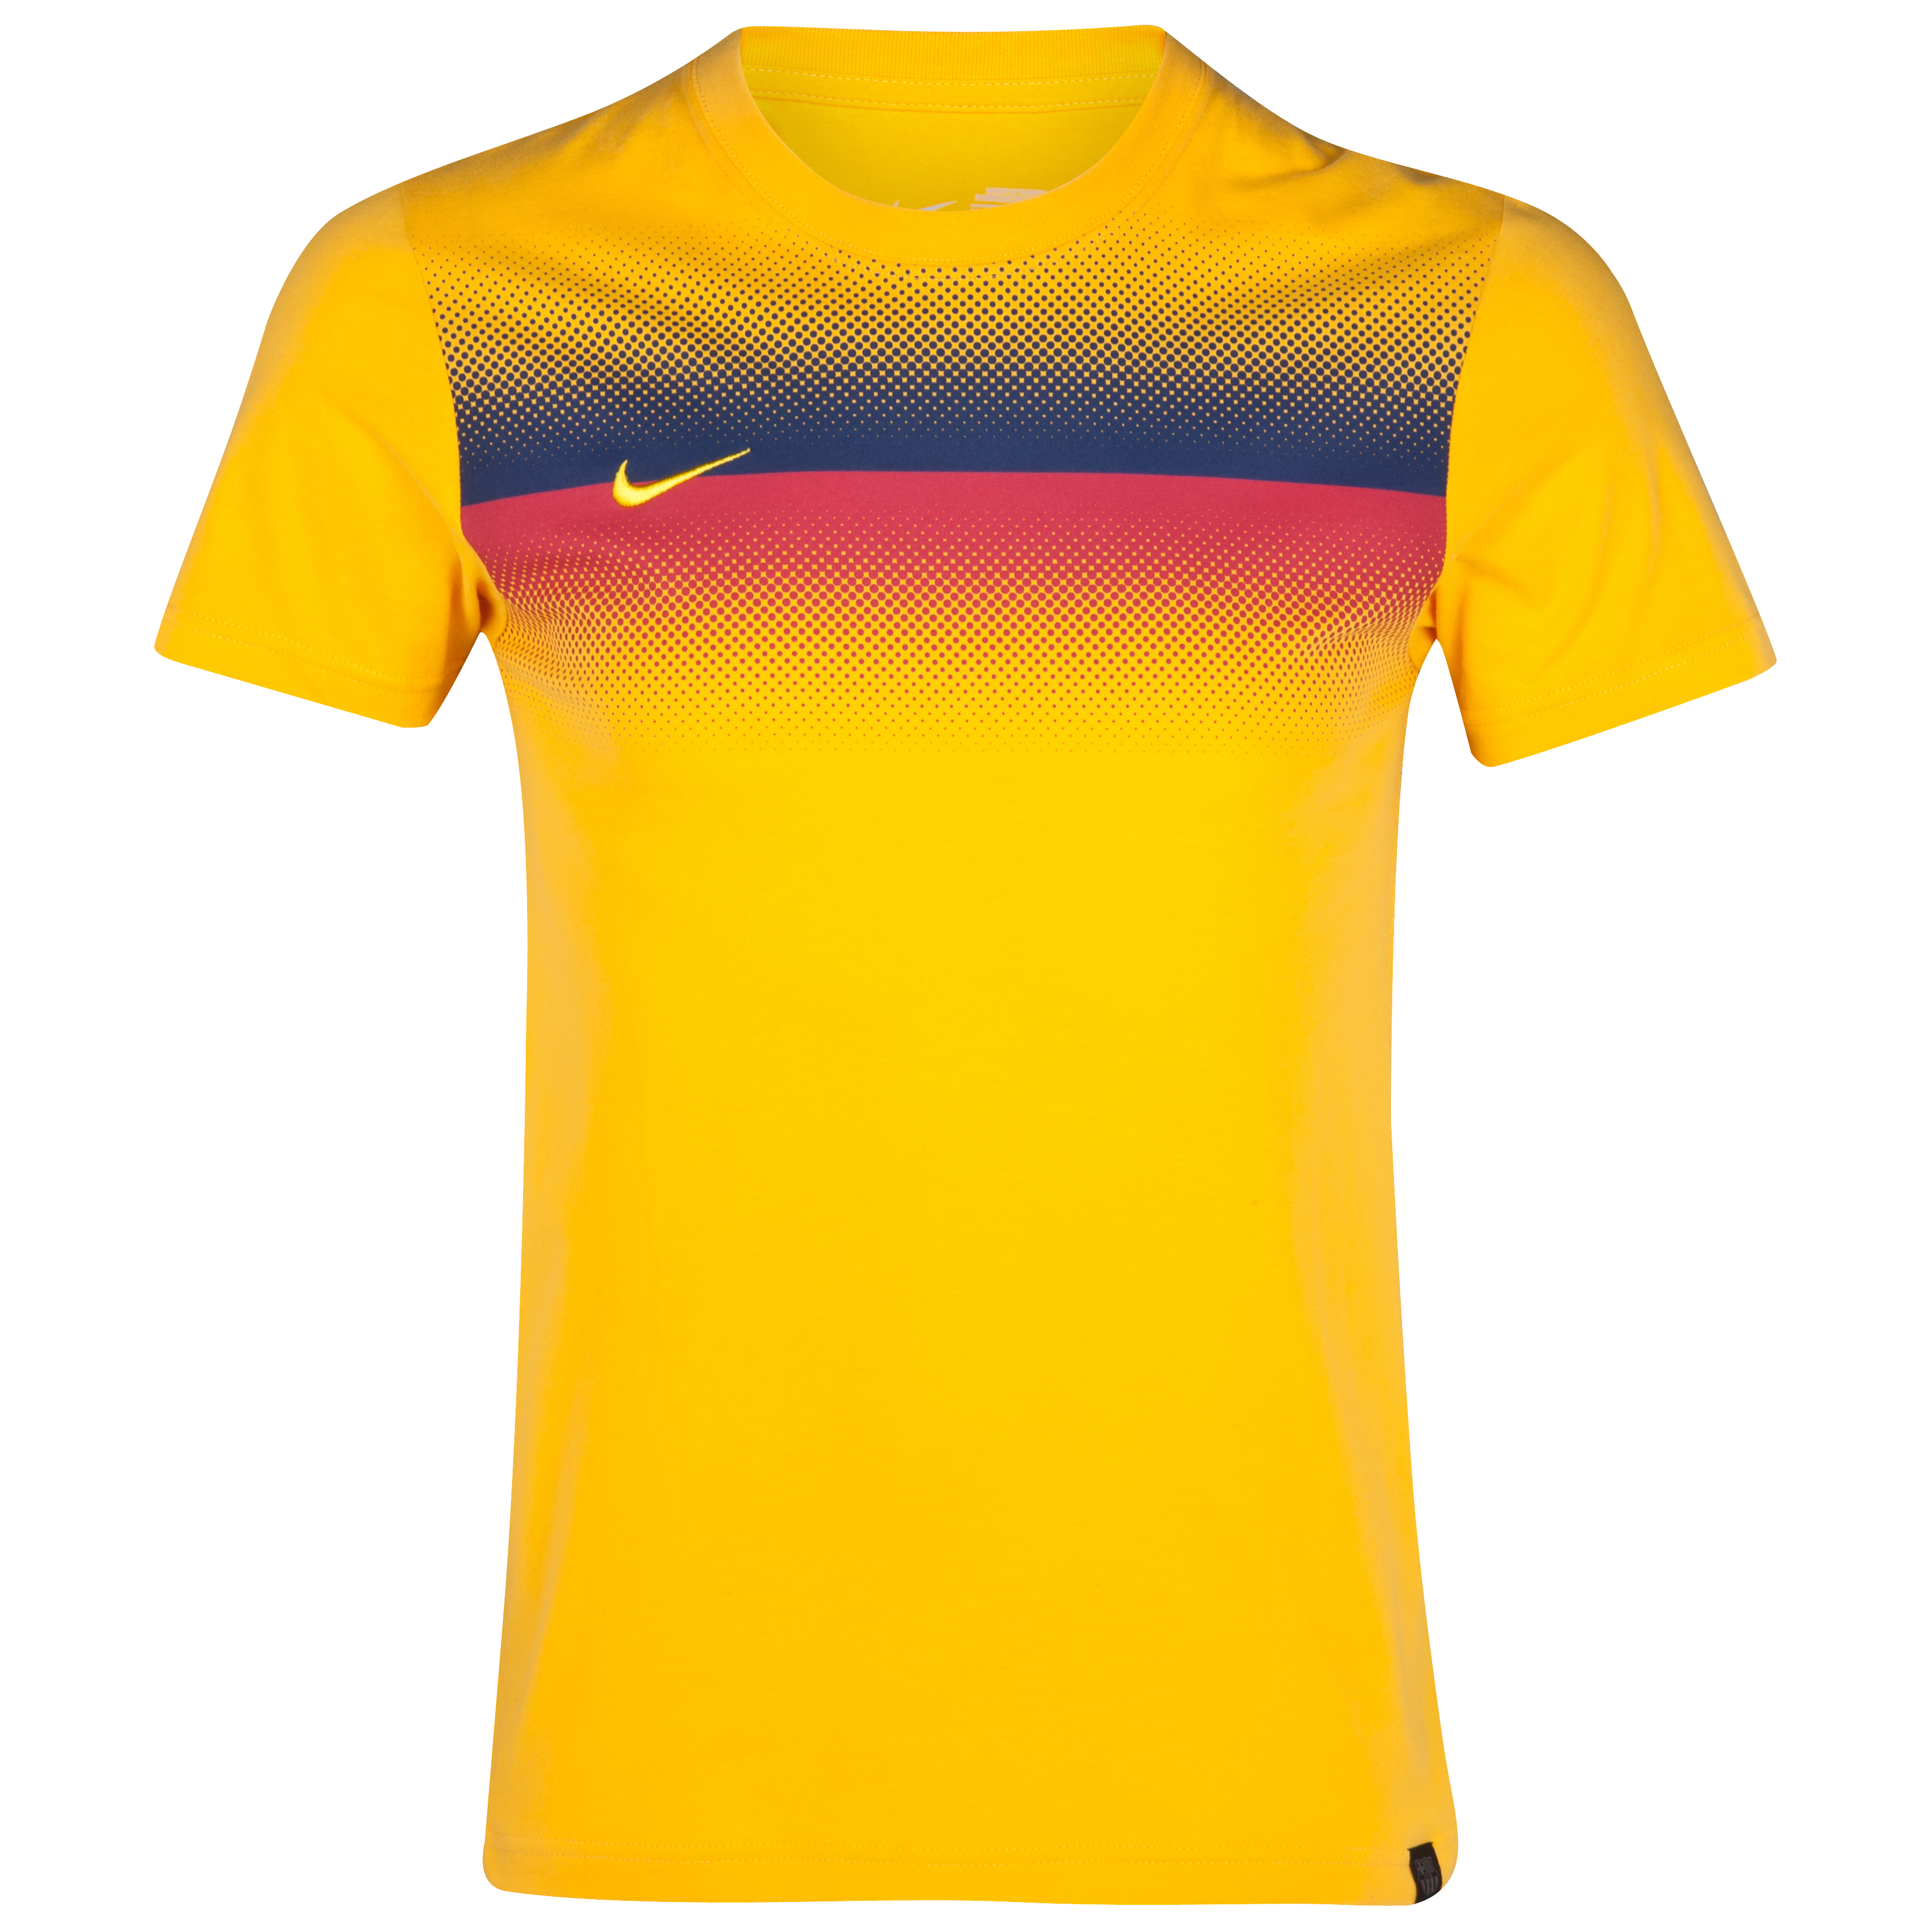 Barcelona Prematch Supporters T-Shirt - University Gold/Tour Yellow